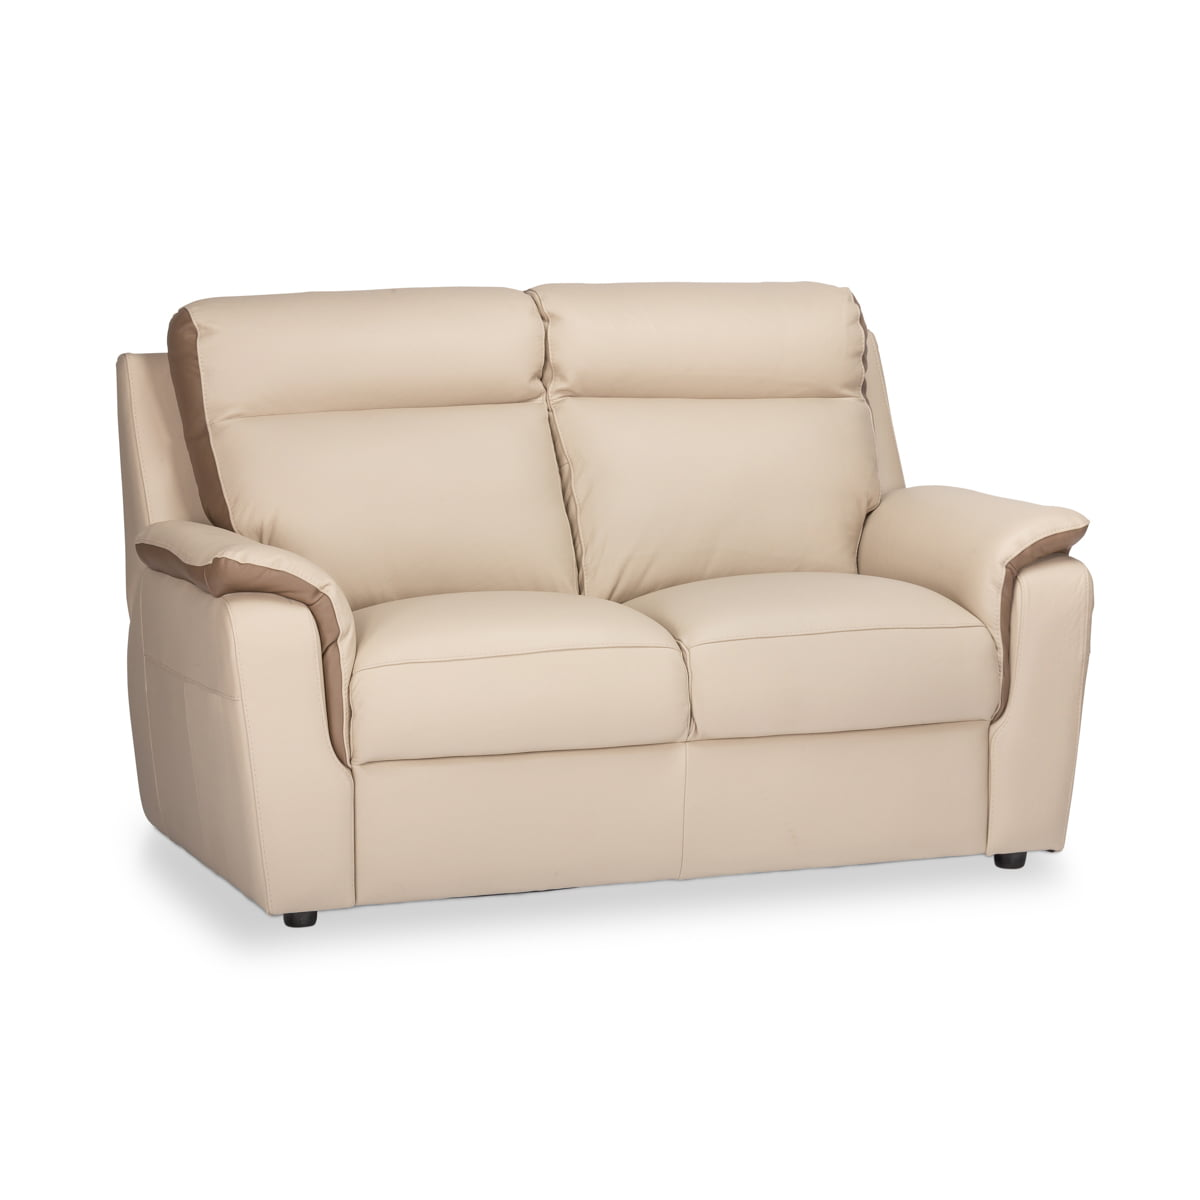 Donatella Leather 2 Seater